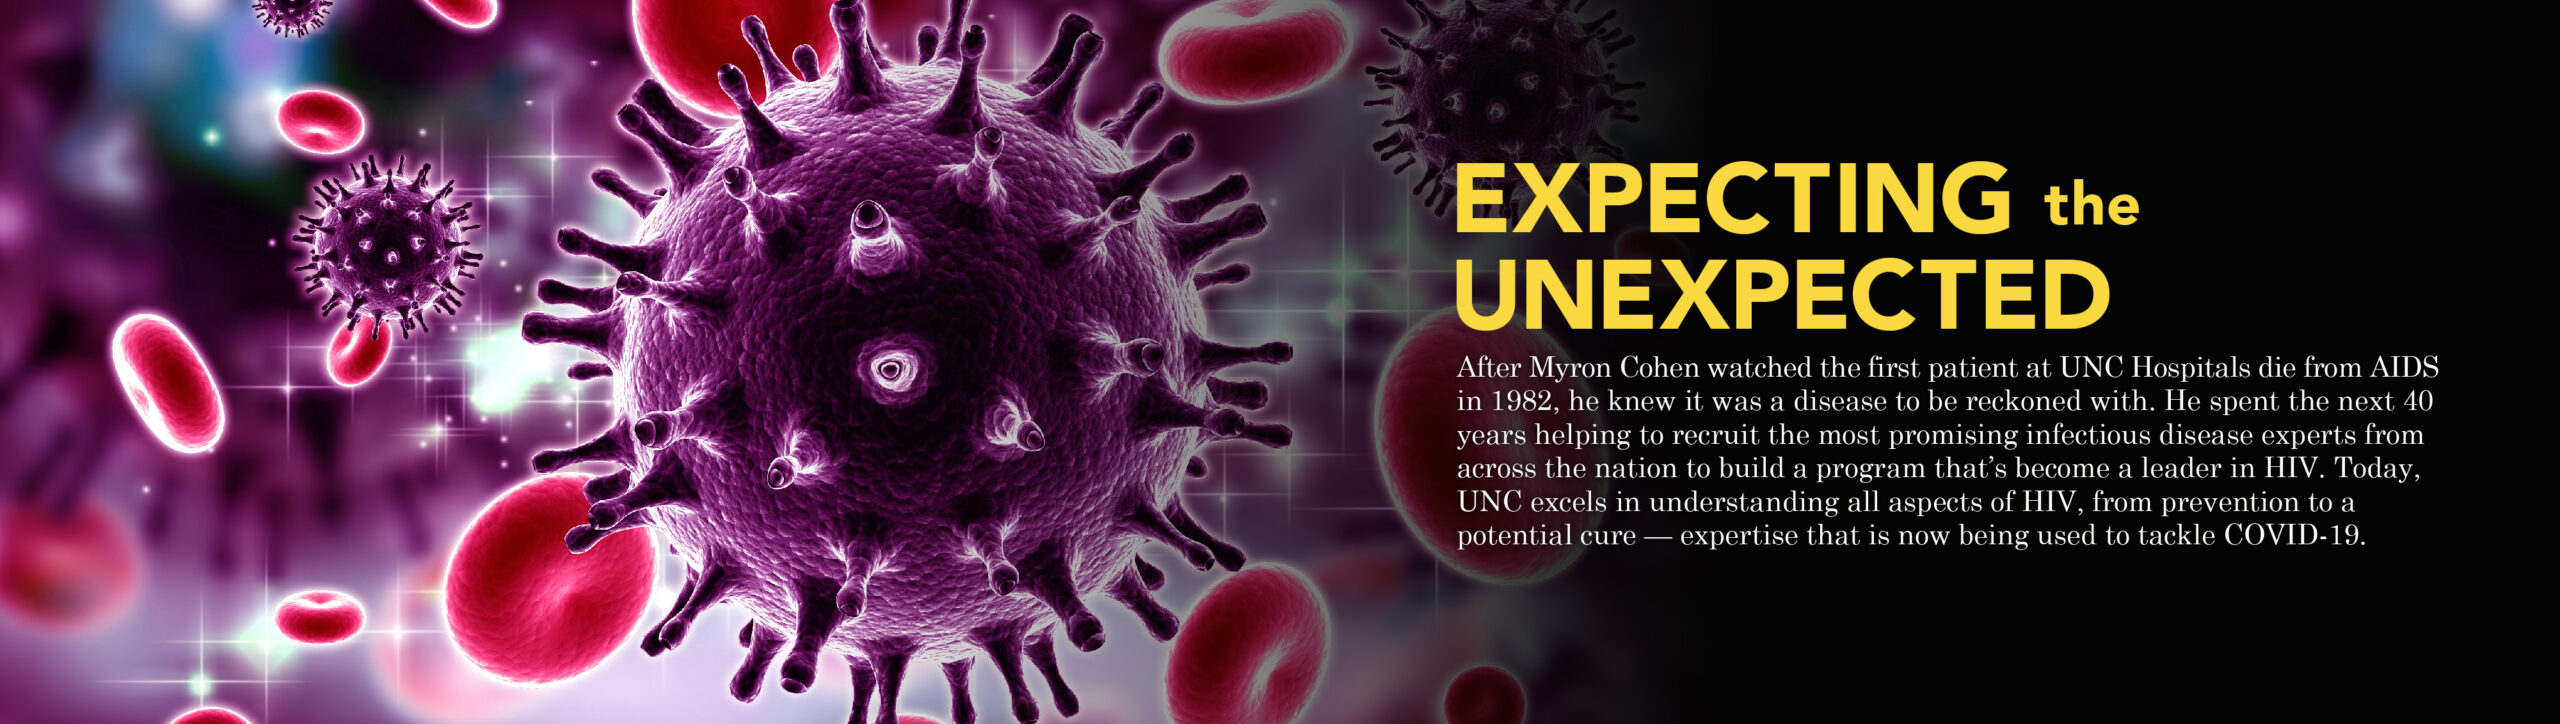 "Main feature banner with a render of the HIV virus amongst blood cells: ""Expecting the Unexpected: After Myron Cohen watched the first patient at UNC Hospitals die from AIDS in 1982, he knew it was a disease to be reckoned with. He spent the next 40 years helping to recruit the most promising infectious disease experts from across the nation to build a program that's become a leader in HIV. Today, UNC excels in understanding all aspects of HIV, from prevention to apotential cure — expertise that is now being used to tackle COVID-19."""